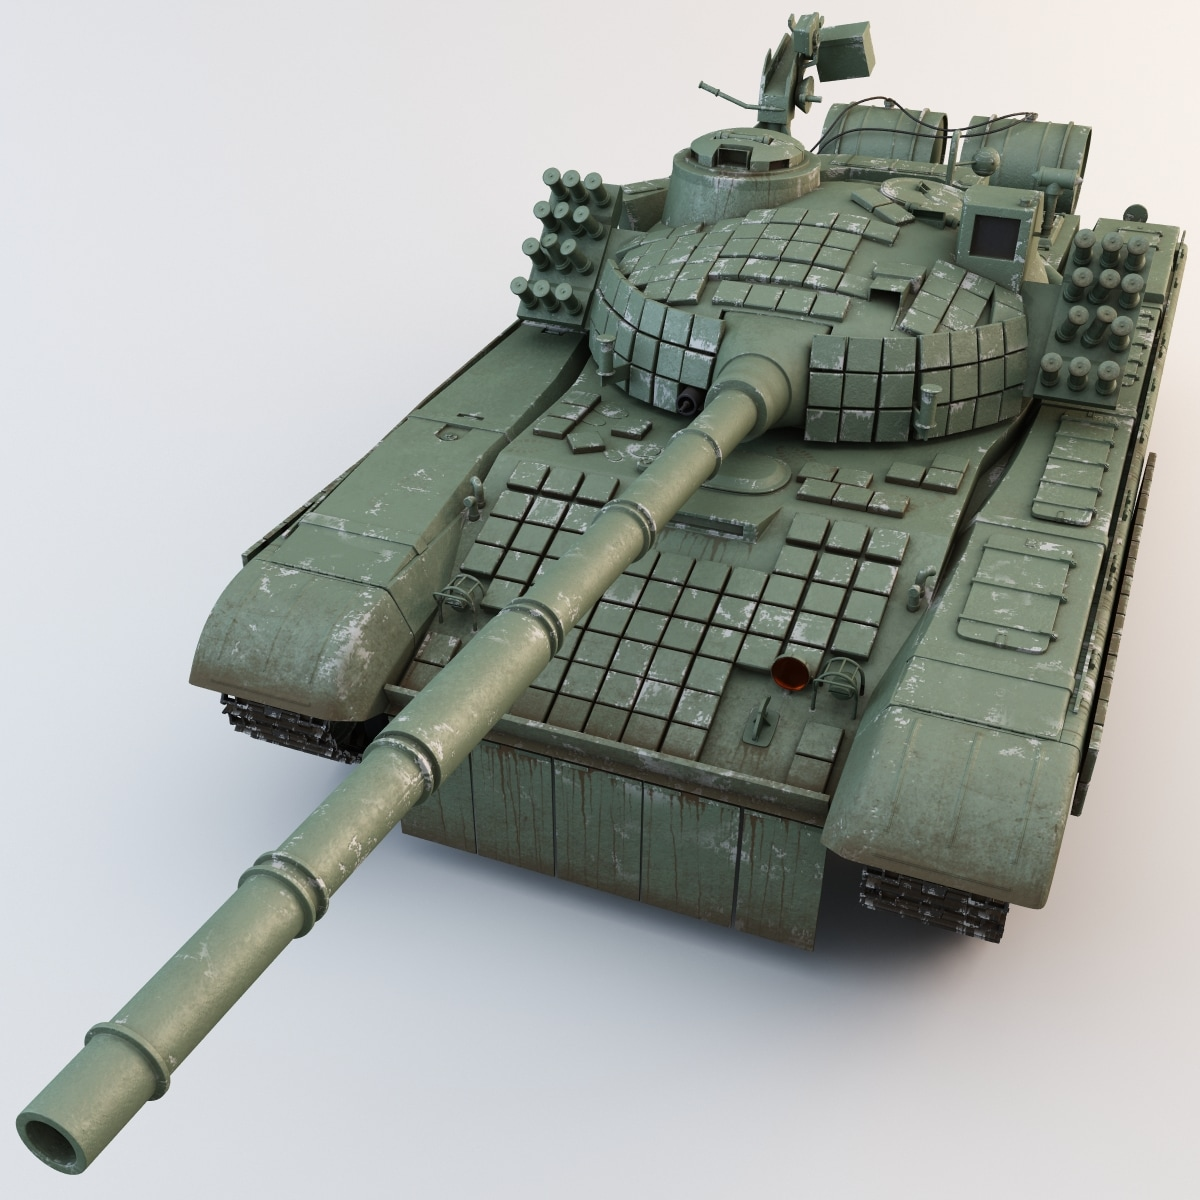 Polish_Main_Battle_Tank_PT-91_Twardy_2_005.jpg